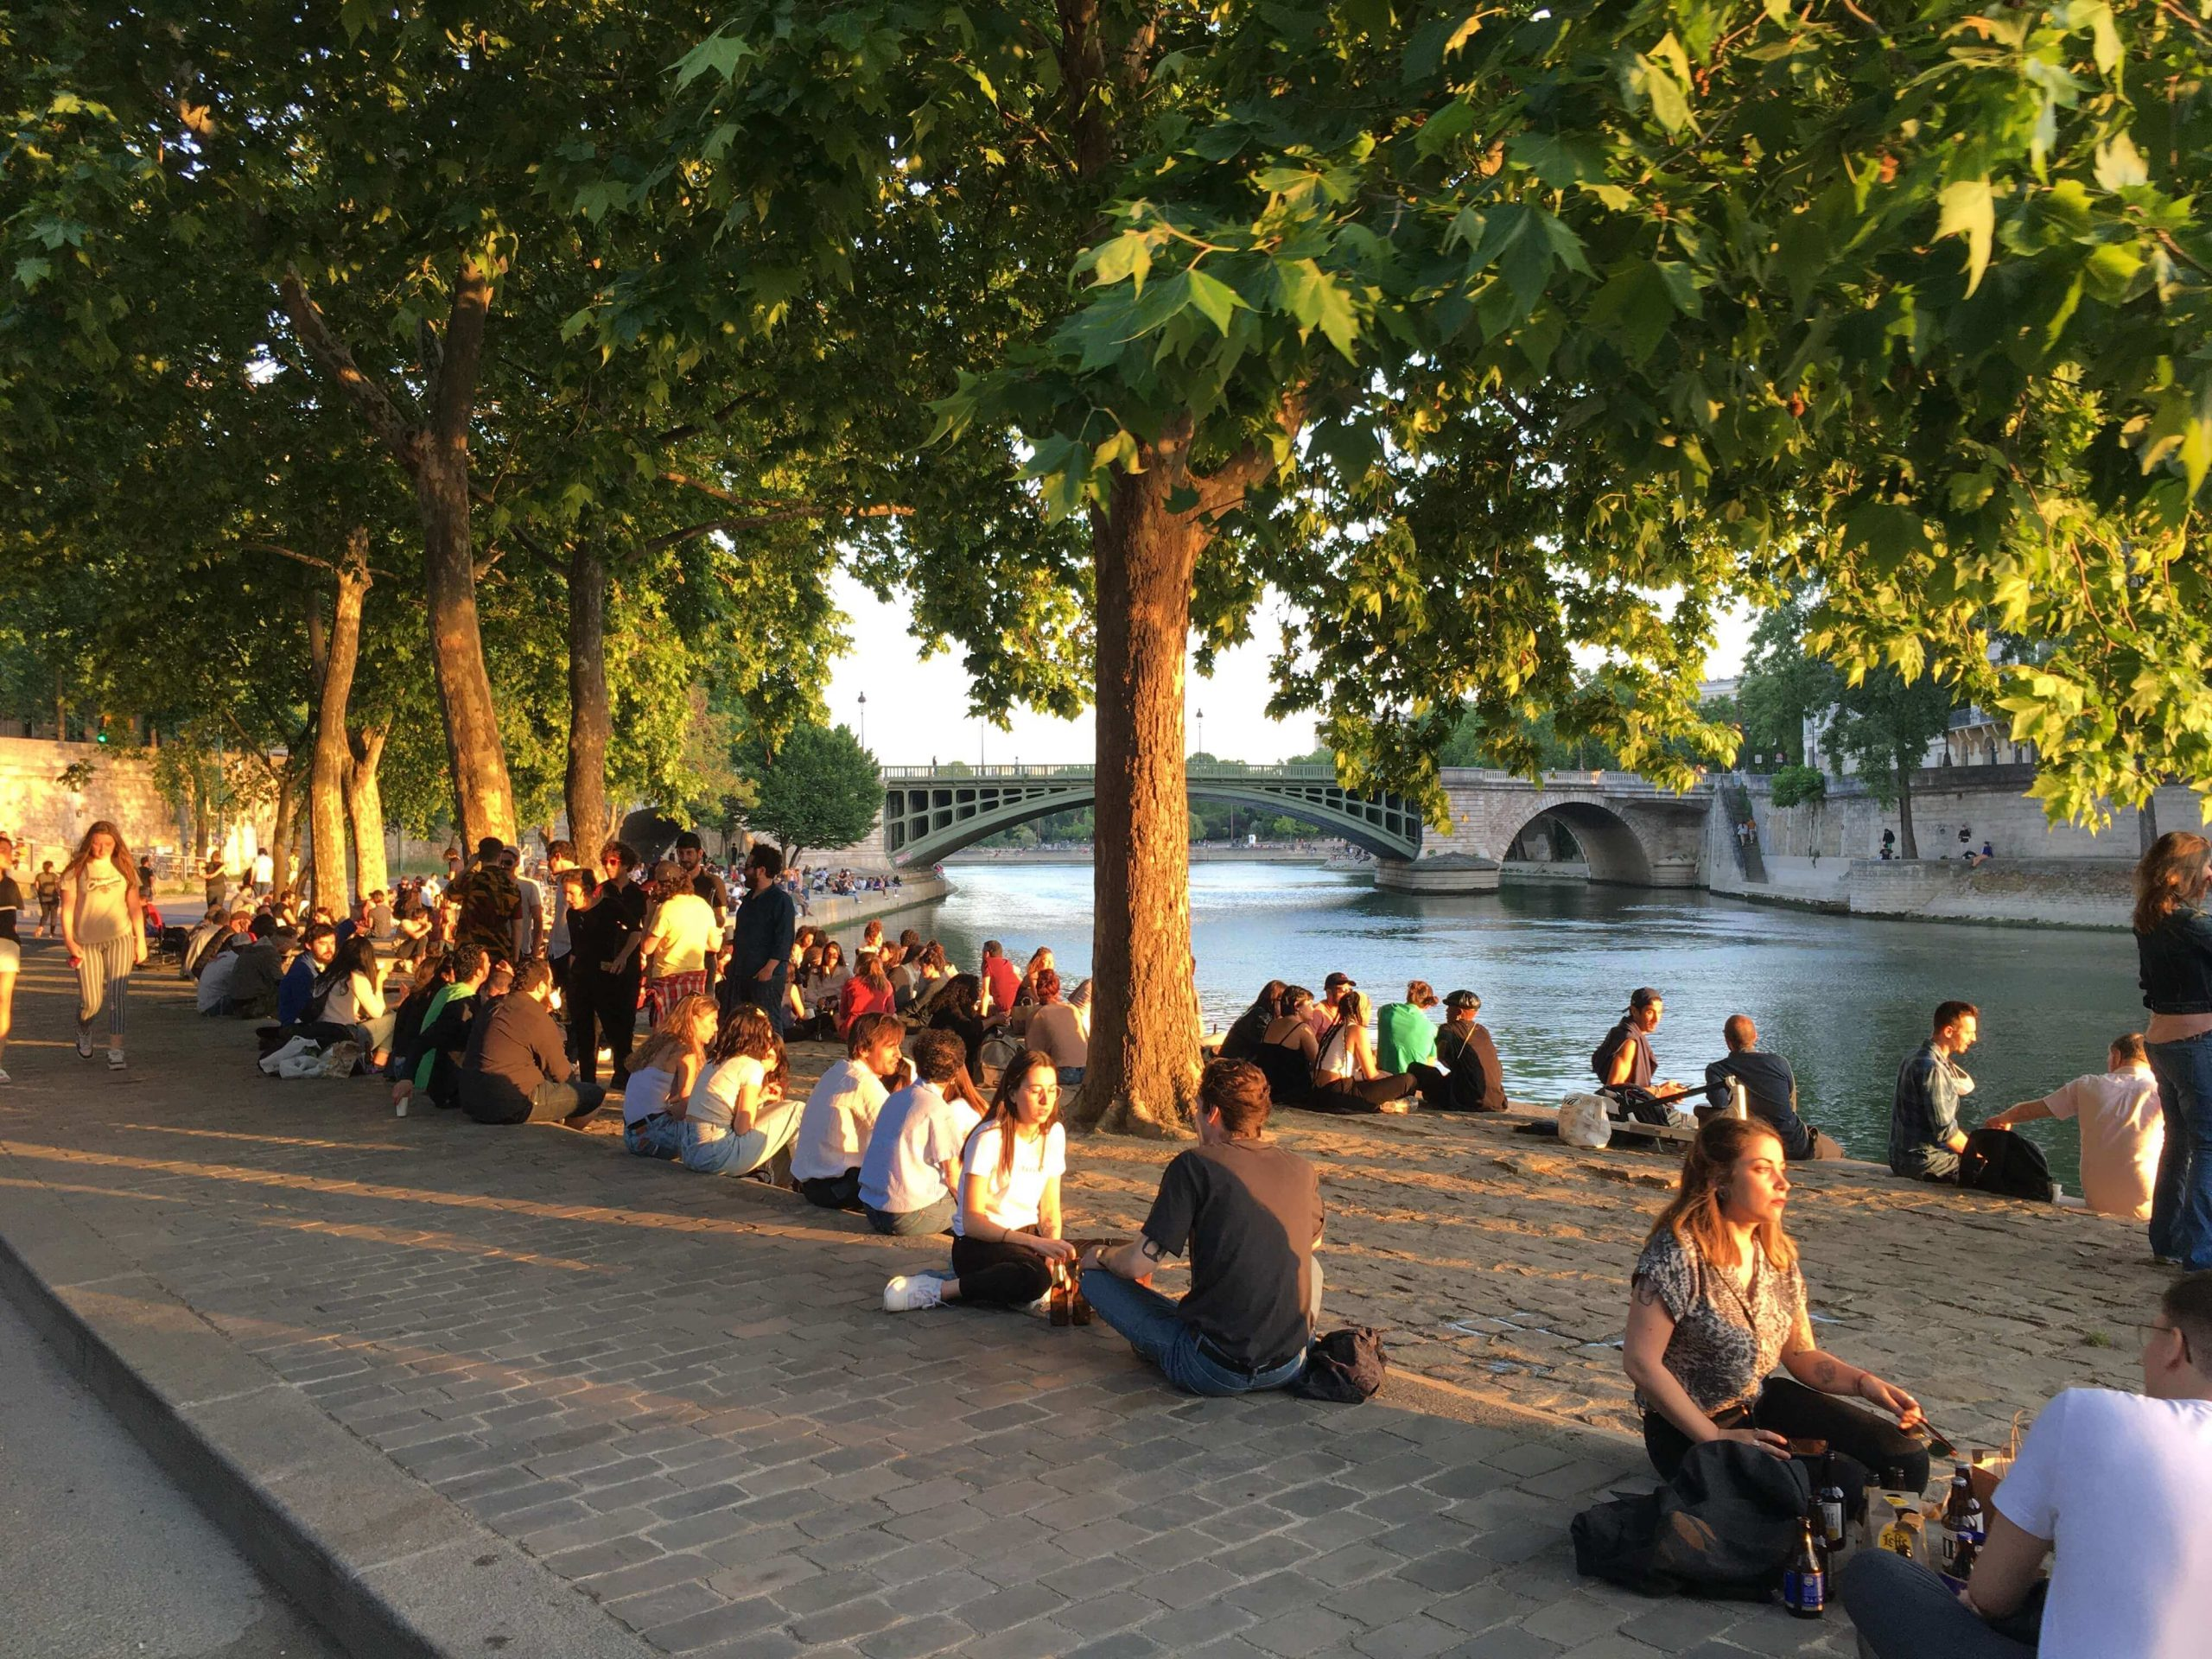 Parisians gathering on the banks of the Seine